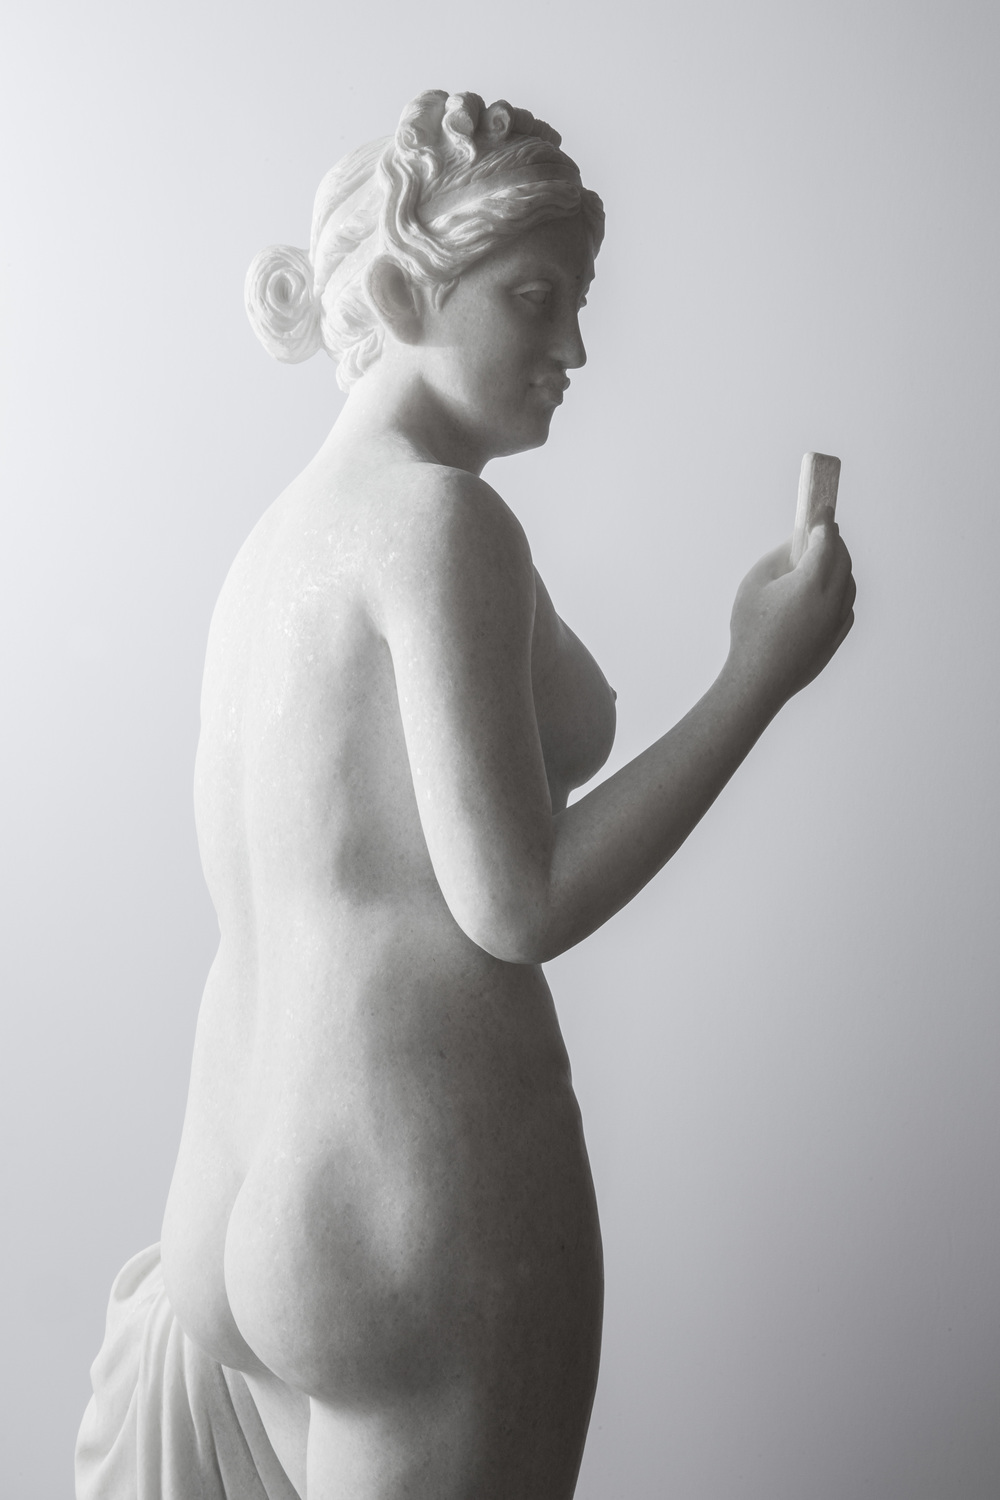 Immortalization of Self (Venus Holding an iPhone)